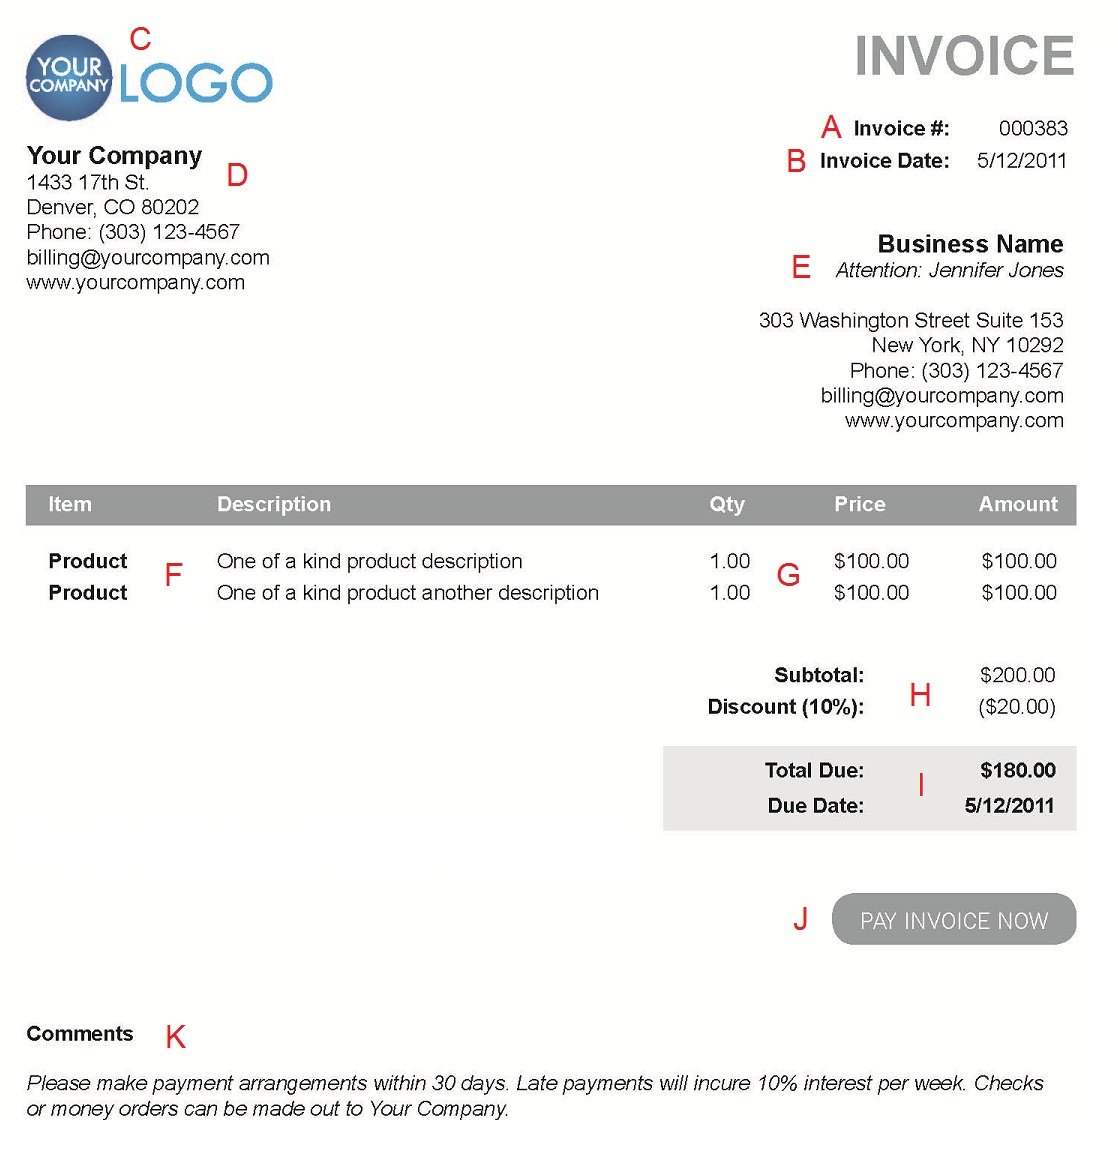 Pxworkoutfreeus  Marvellous The  Different Sections Of An Electronic Payment Invoice With Foxy A  With Extraordinary Invoice Template For Openoffice Also Sample Invoice Payment Terms In Addition Best Invoice Apps And Excel Templates For Invoices As Well As Invoice Value Additionally Auto Mechanic Invoice Template From Paysimplecom With Pxworkoutfreeus  Foxy The  Different Sections Of An Electronic Payment Invoice With Extraordinary A  And Marvellous Invoice Template For Openoffice Also Sample Invoice Payment Terms In Addition Best Invoice Apps From Paysimplecom